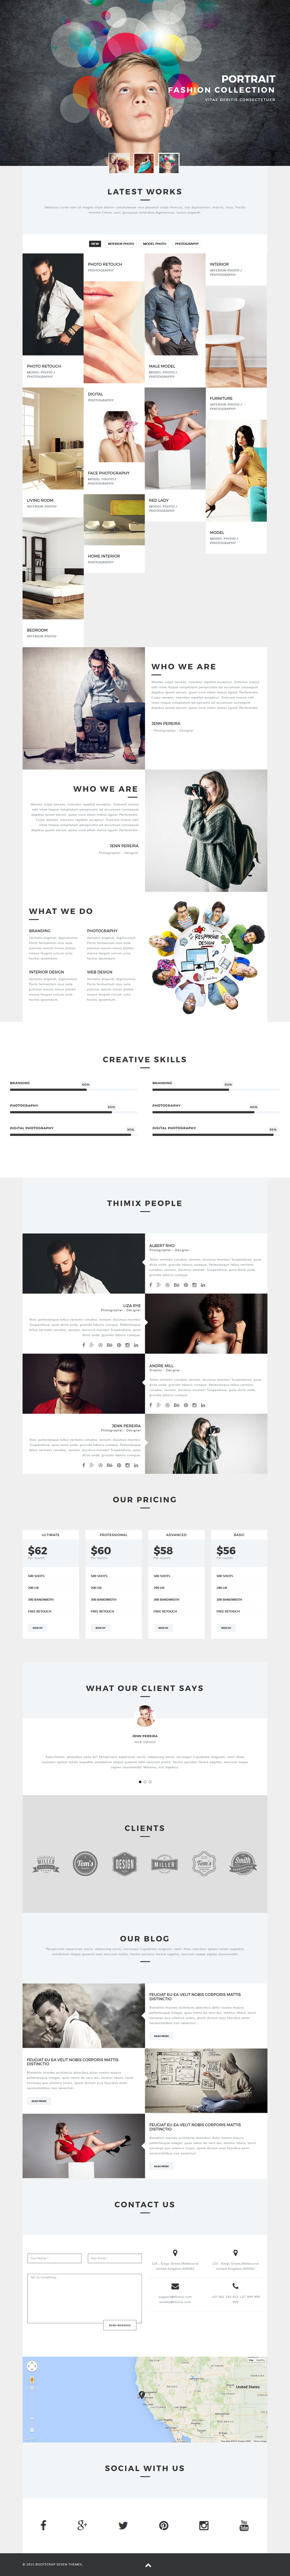 Thimix Creative Portfolio / Photography WP Theme - 1